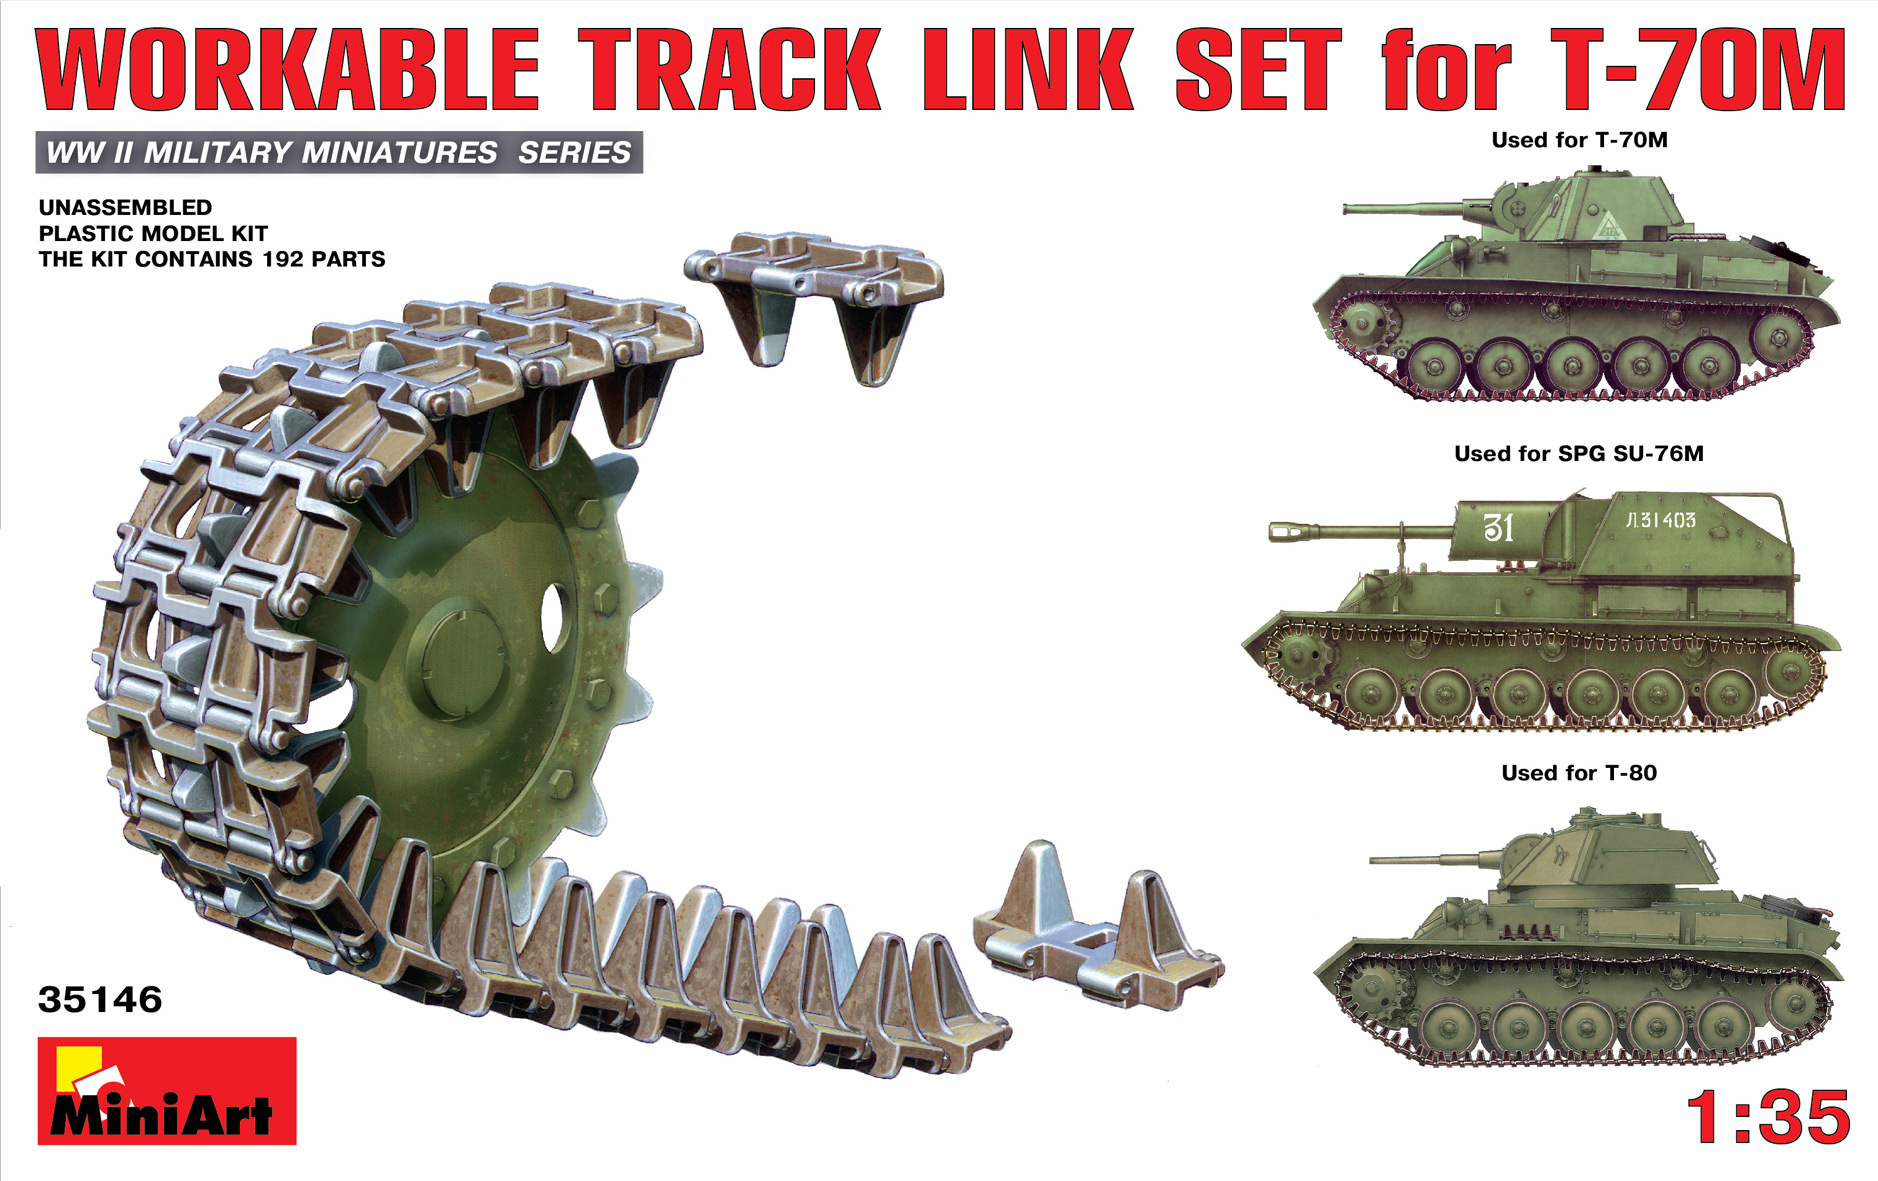 35146 WORKABLE TRACK LINK SET for T-70